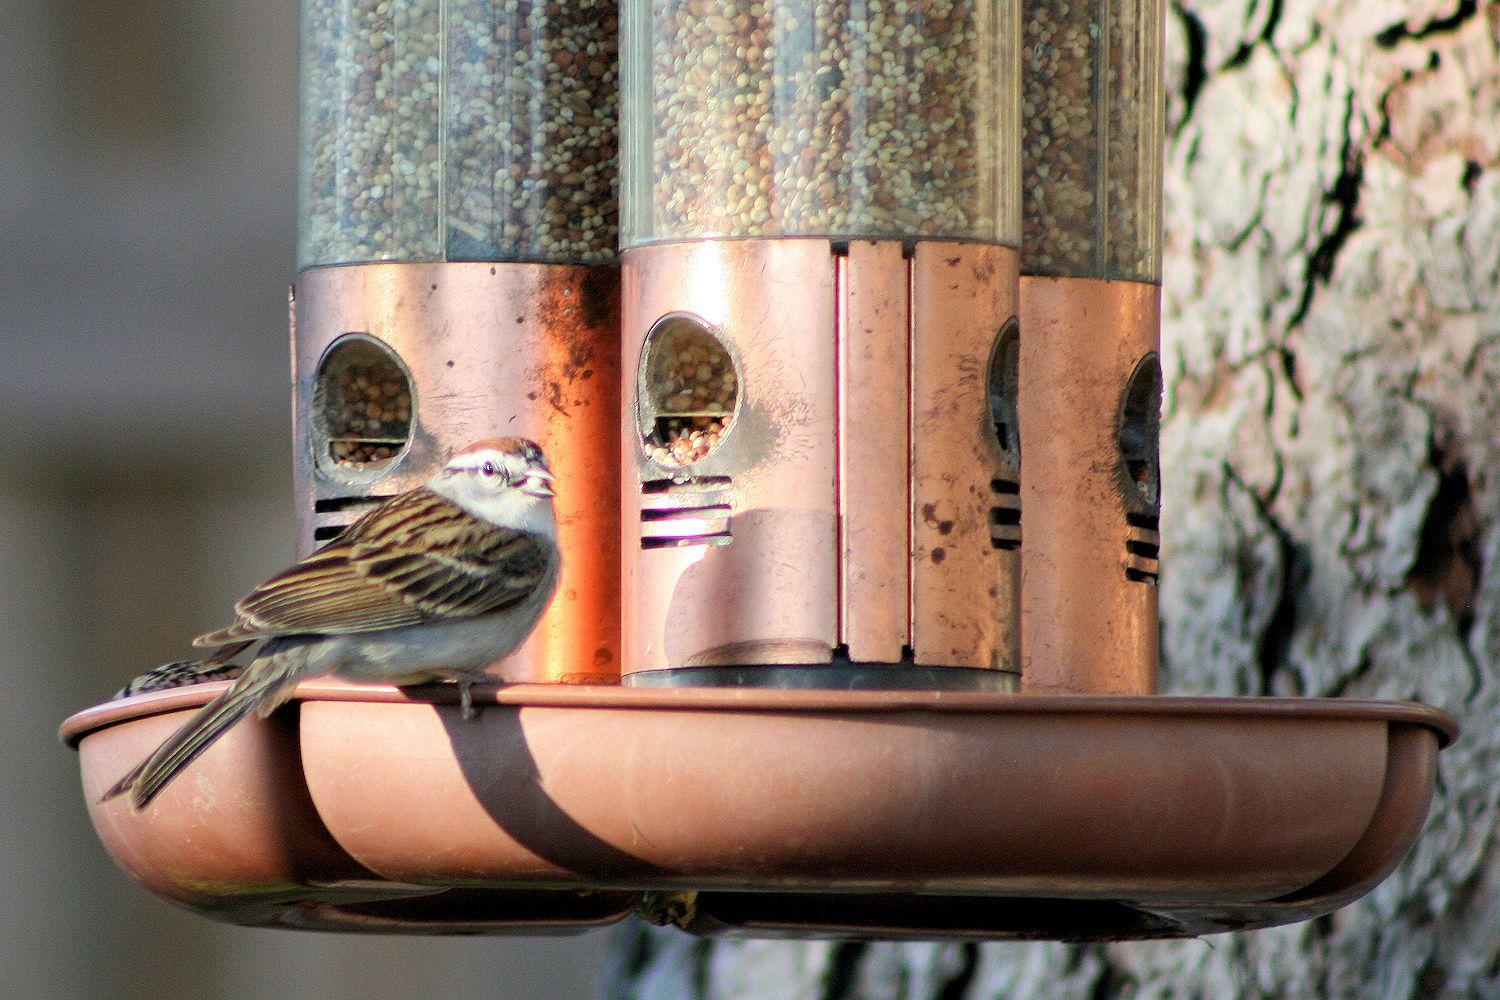 Tips And Tricks To Clean Bird Feeders Safely